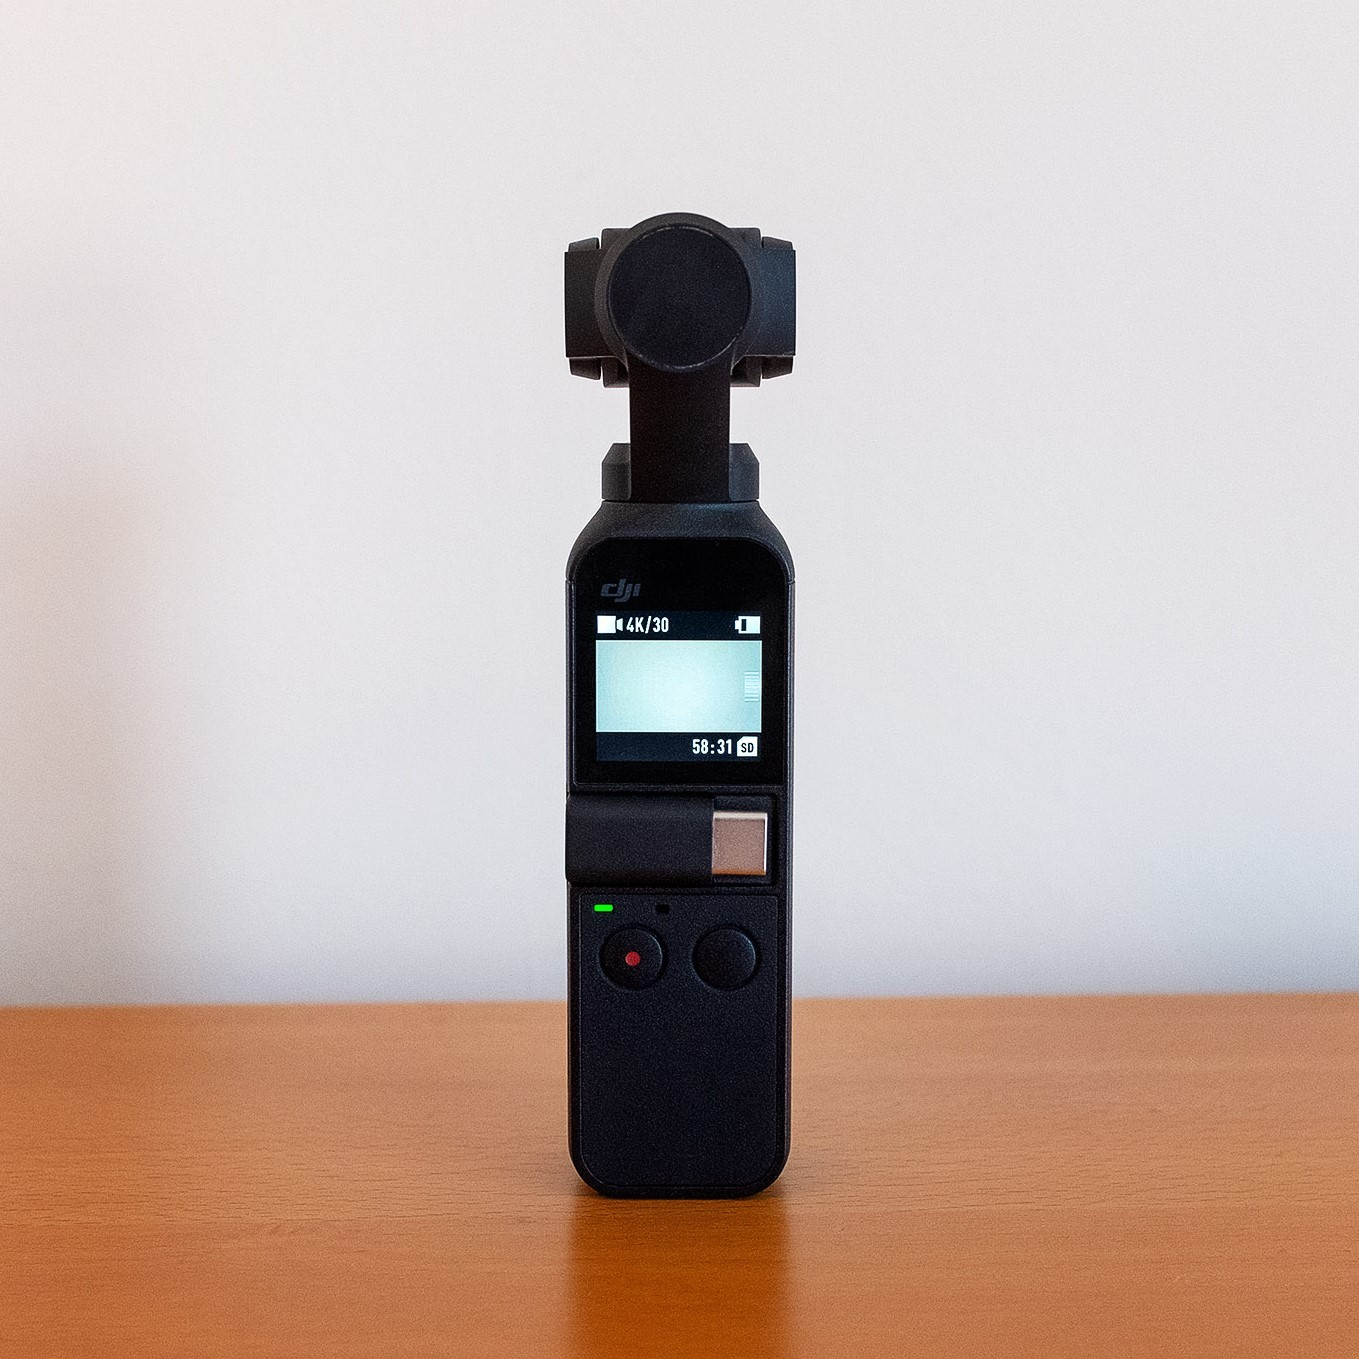 https://igetintopc.org/wp-content/uploads/2019/04/dji-osmo-pocket-review-a-tiny-camera-that-doesnt-skimp-on-the-stabilization.com